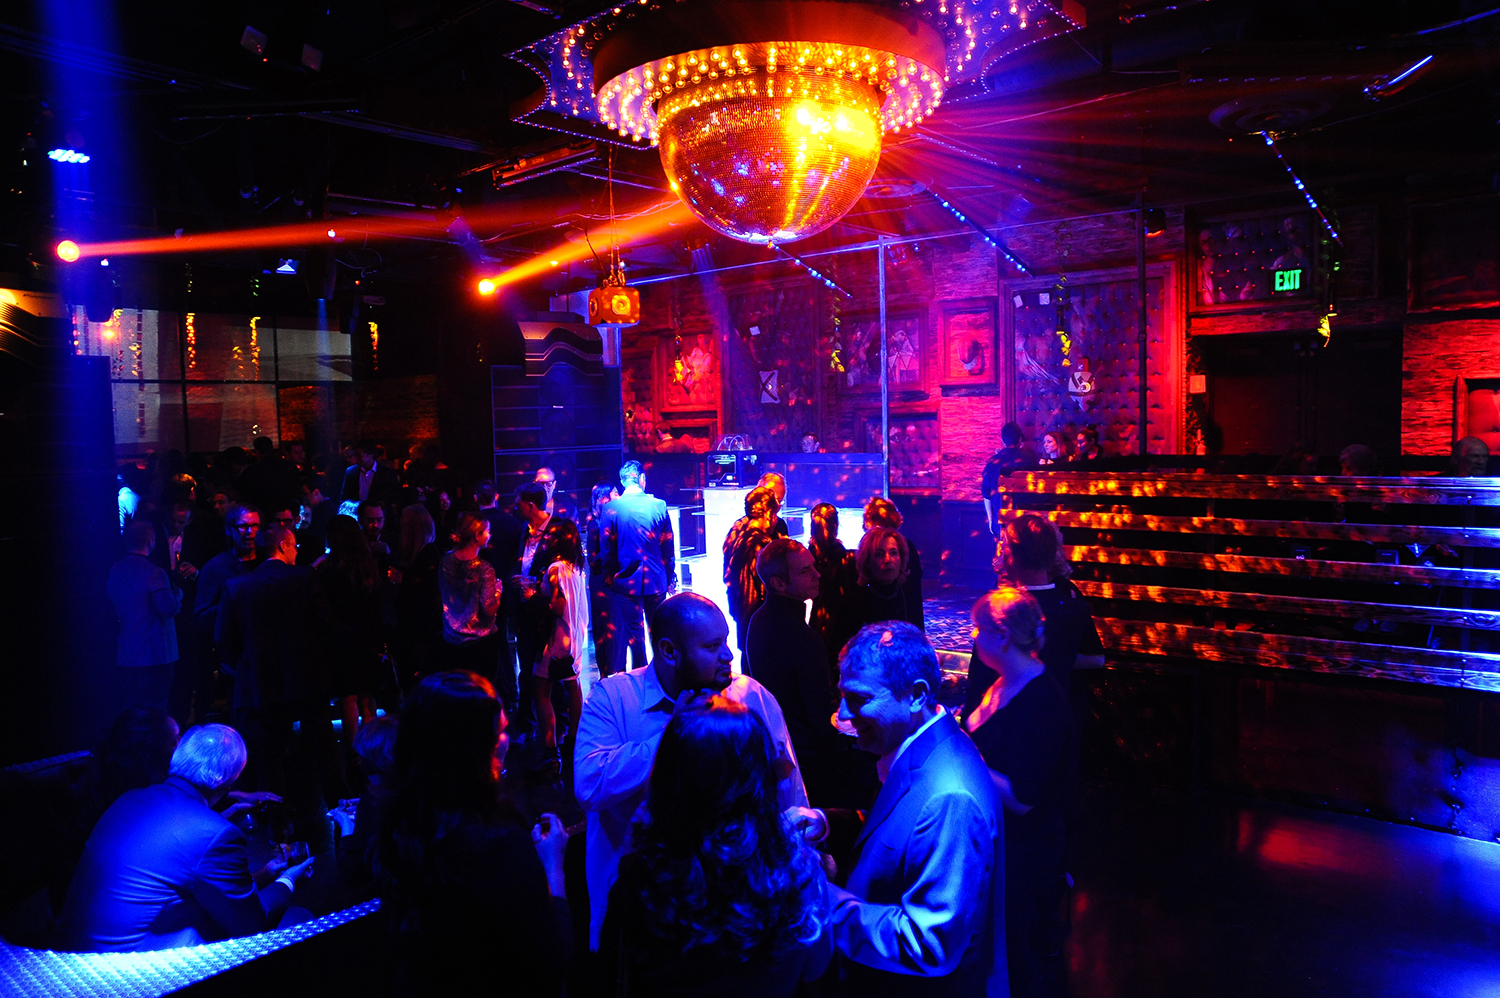 Main event party space